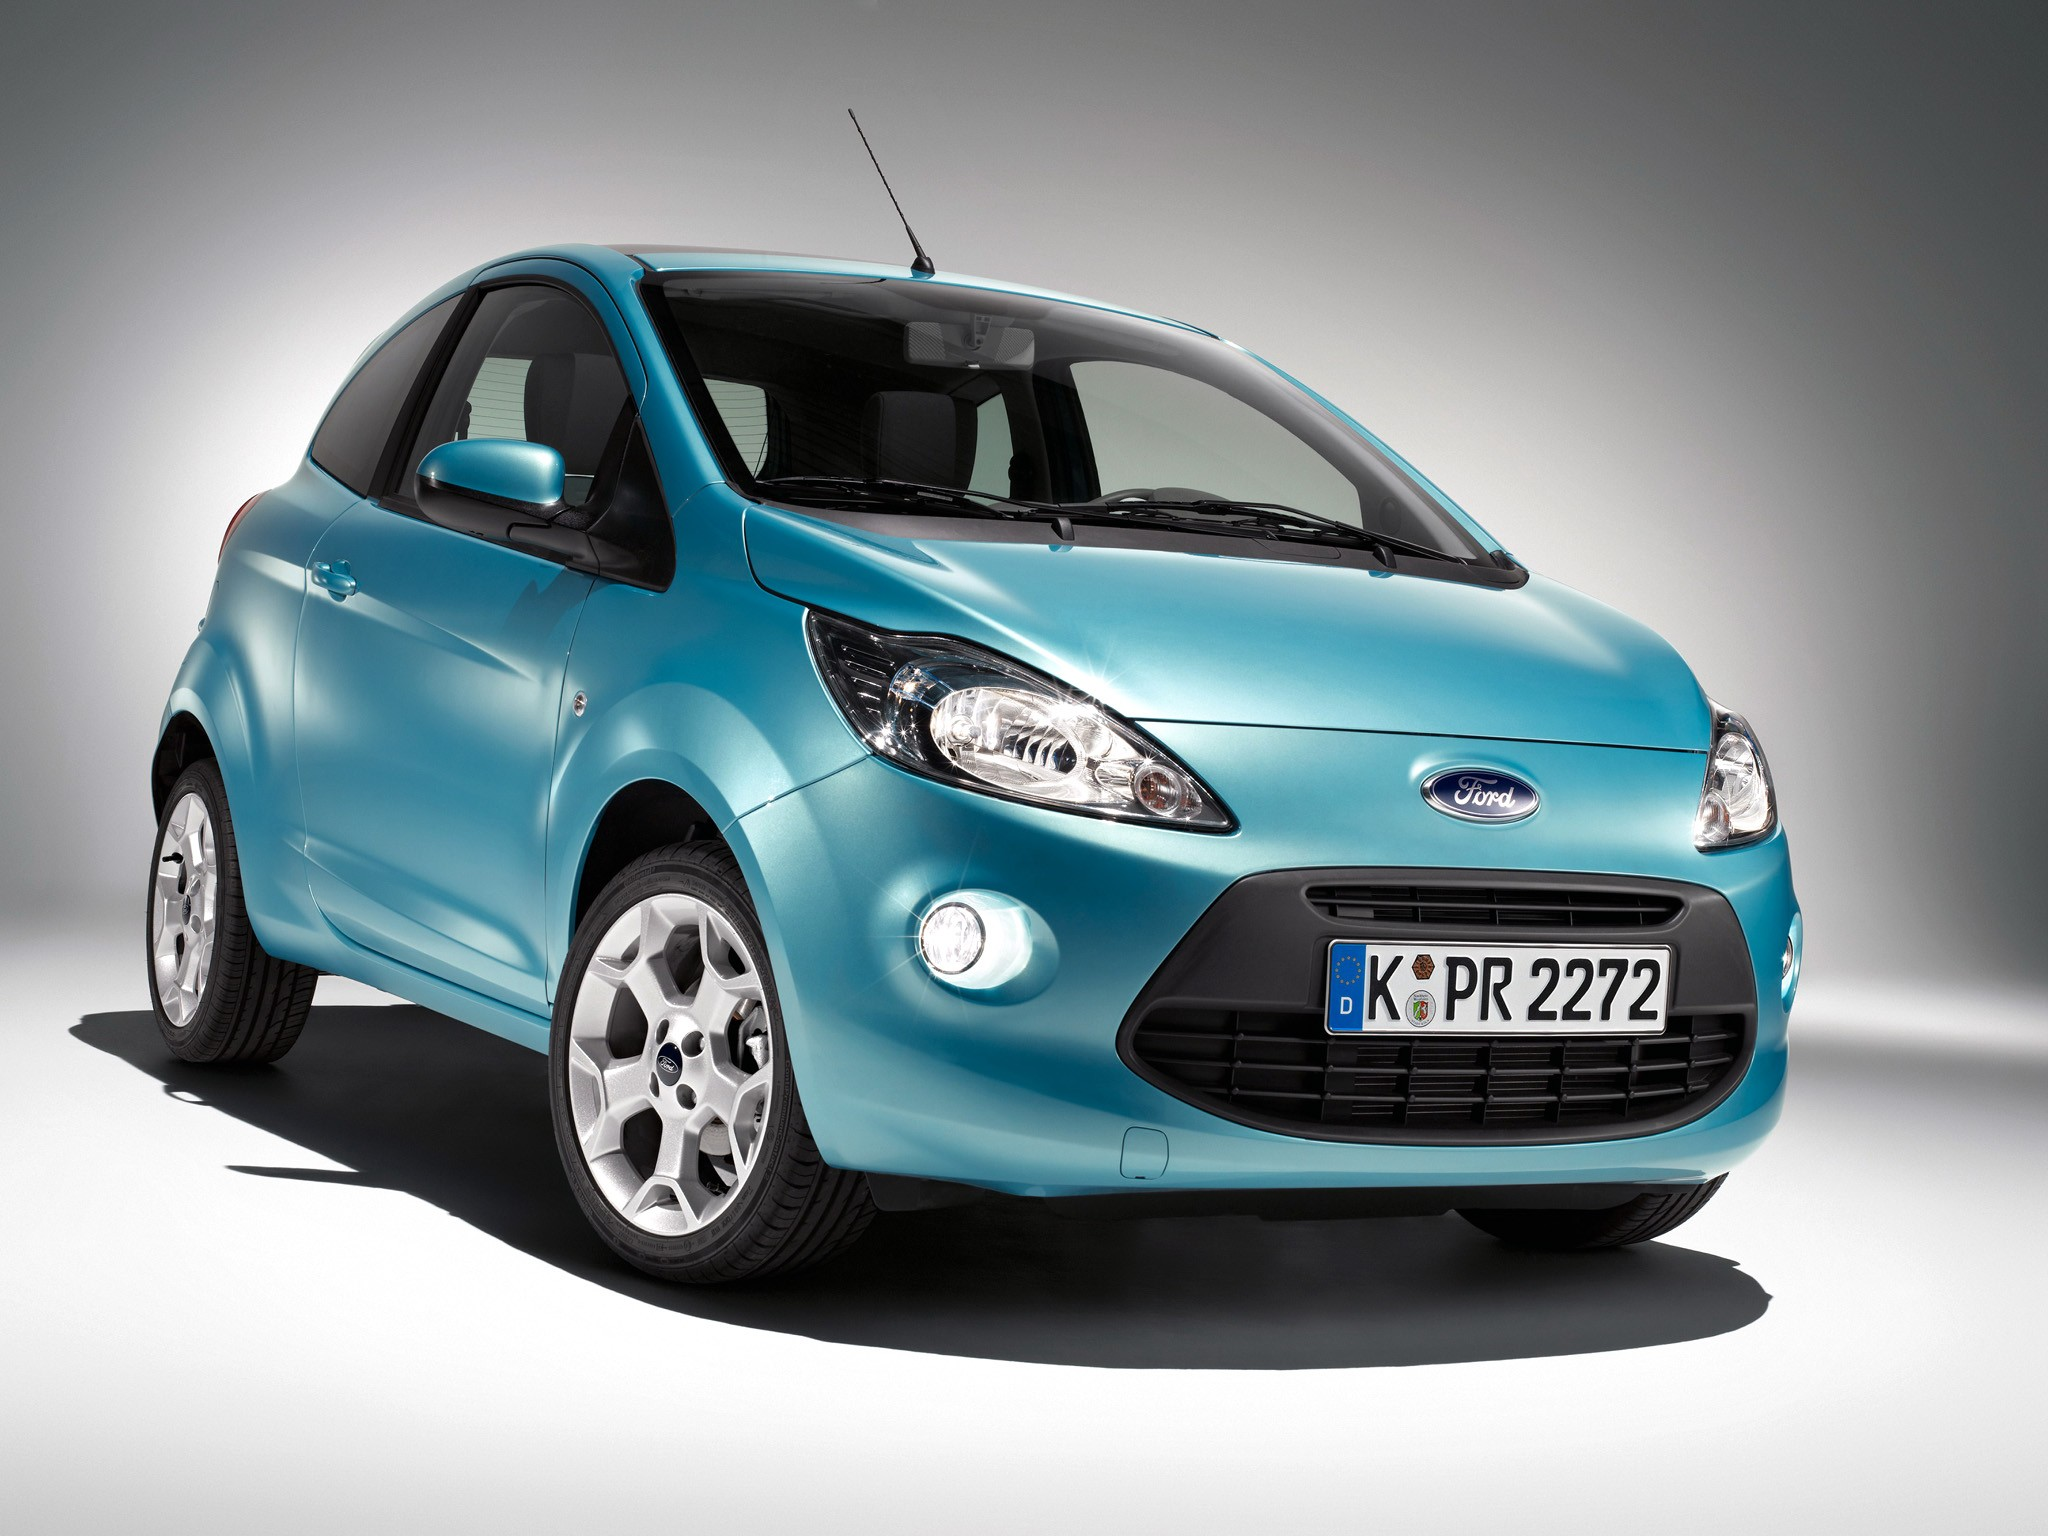 ford ka specs 2008 2009 2010 2011 2012 2013 2014 2015 autoevolution. Black Bedroom Furniture Sets. Home Design Ideas